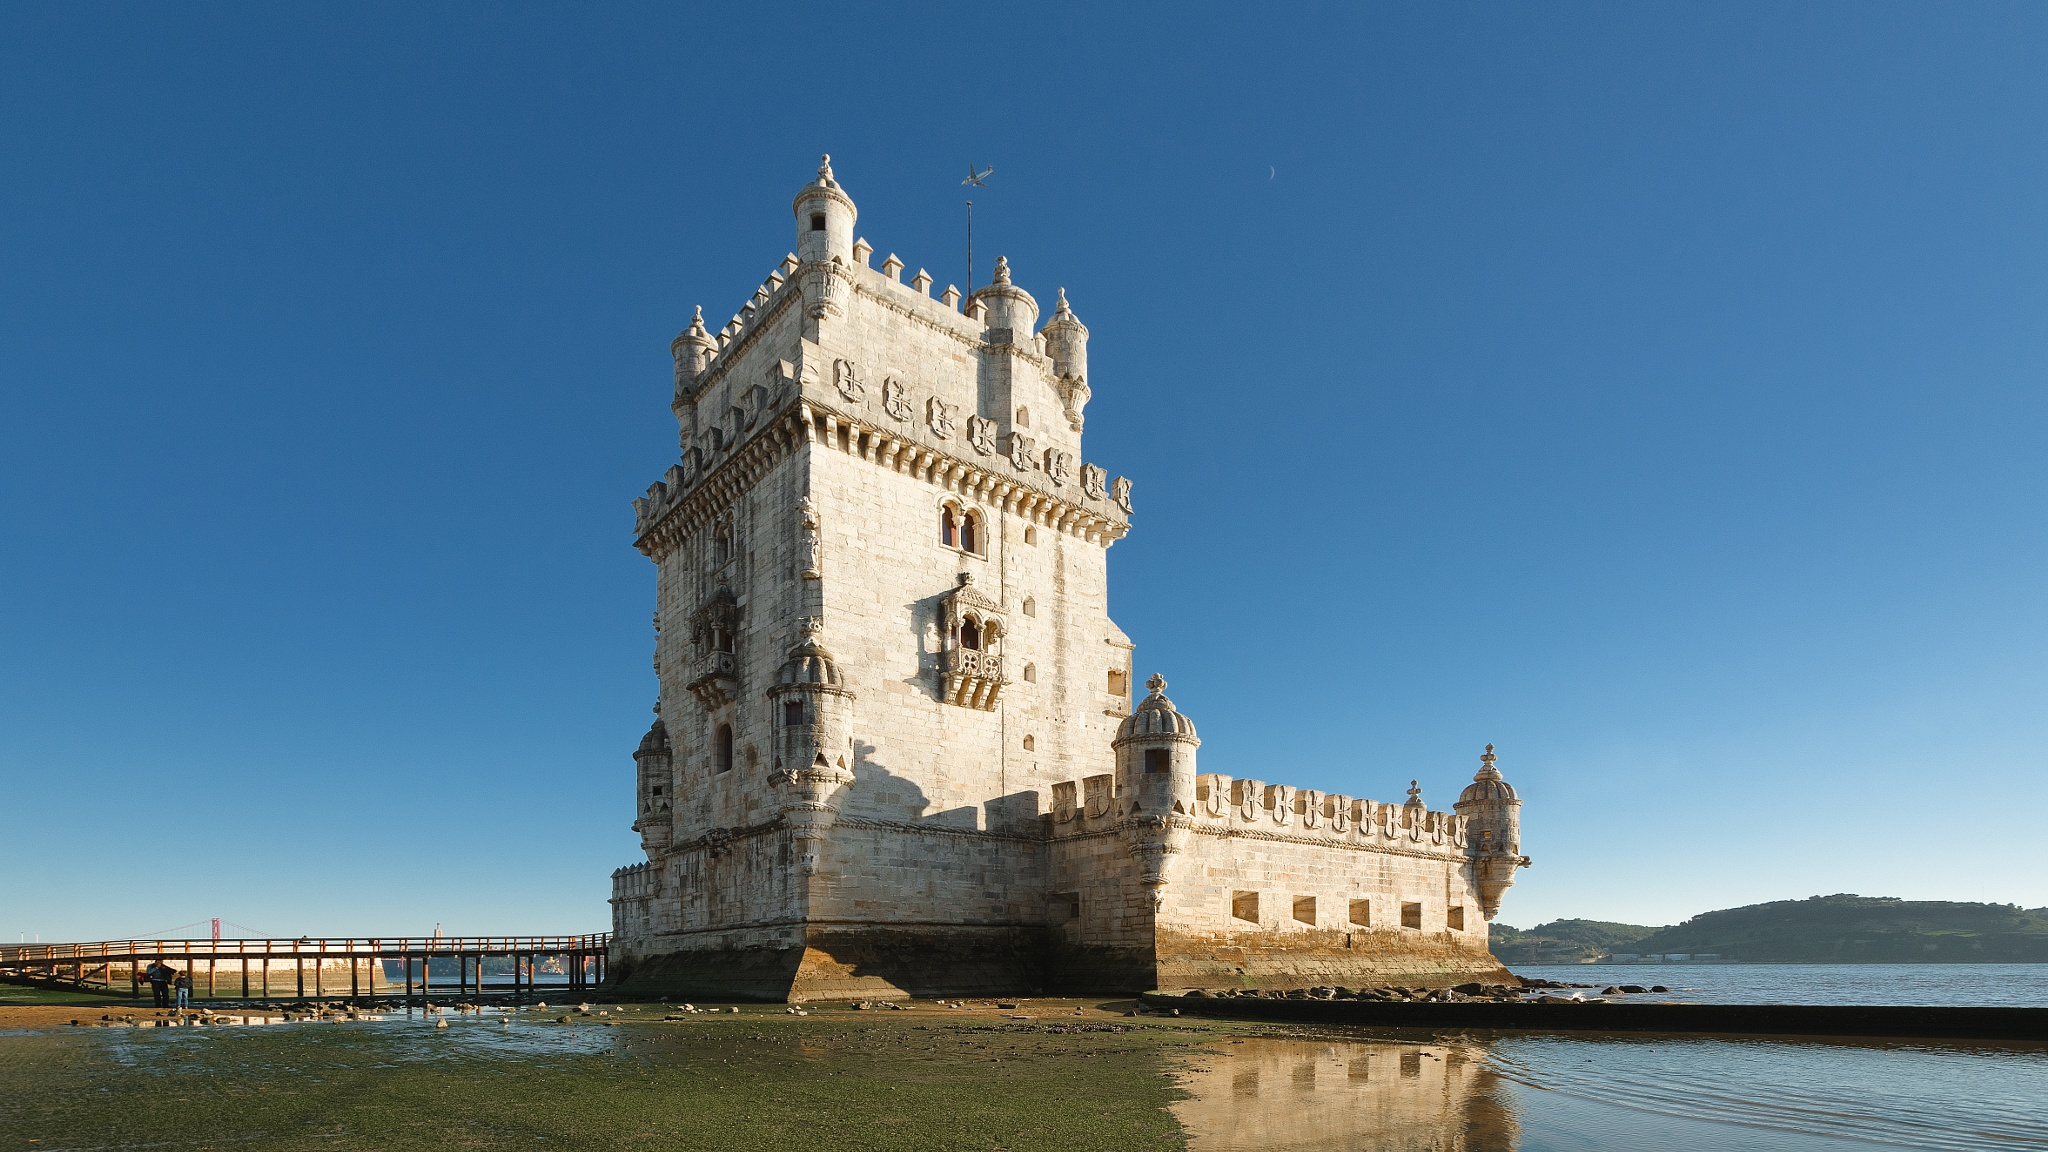 Belem Tower by Uiler Costa